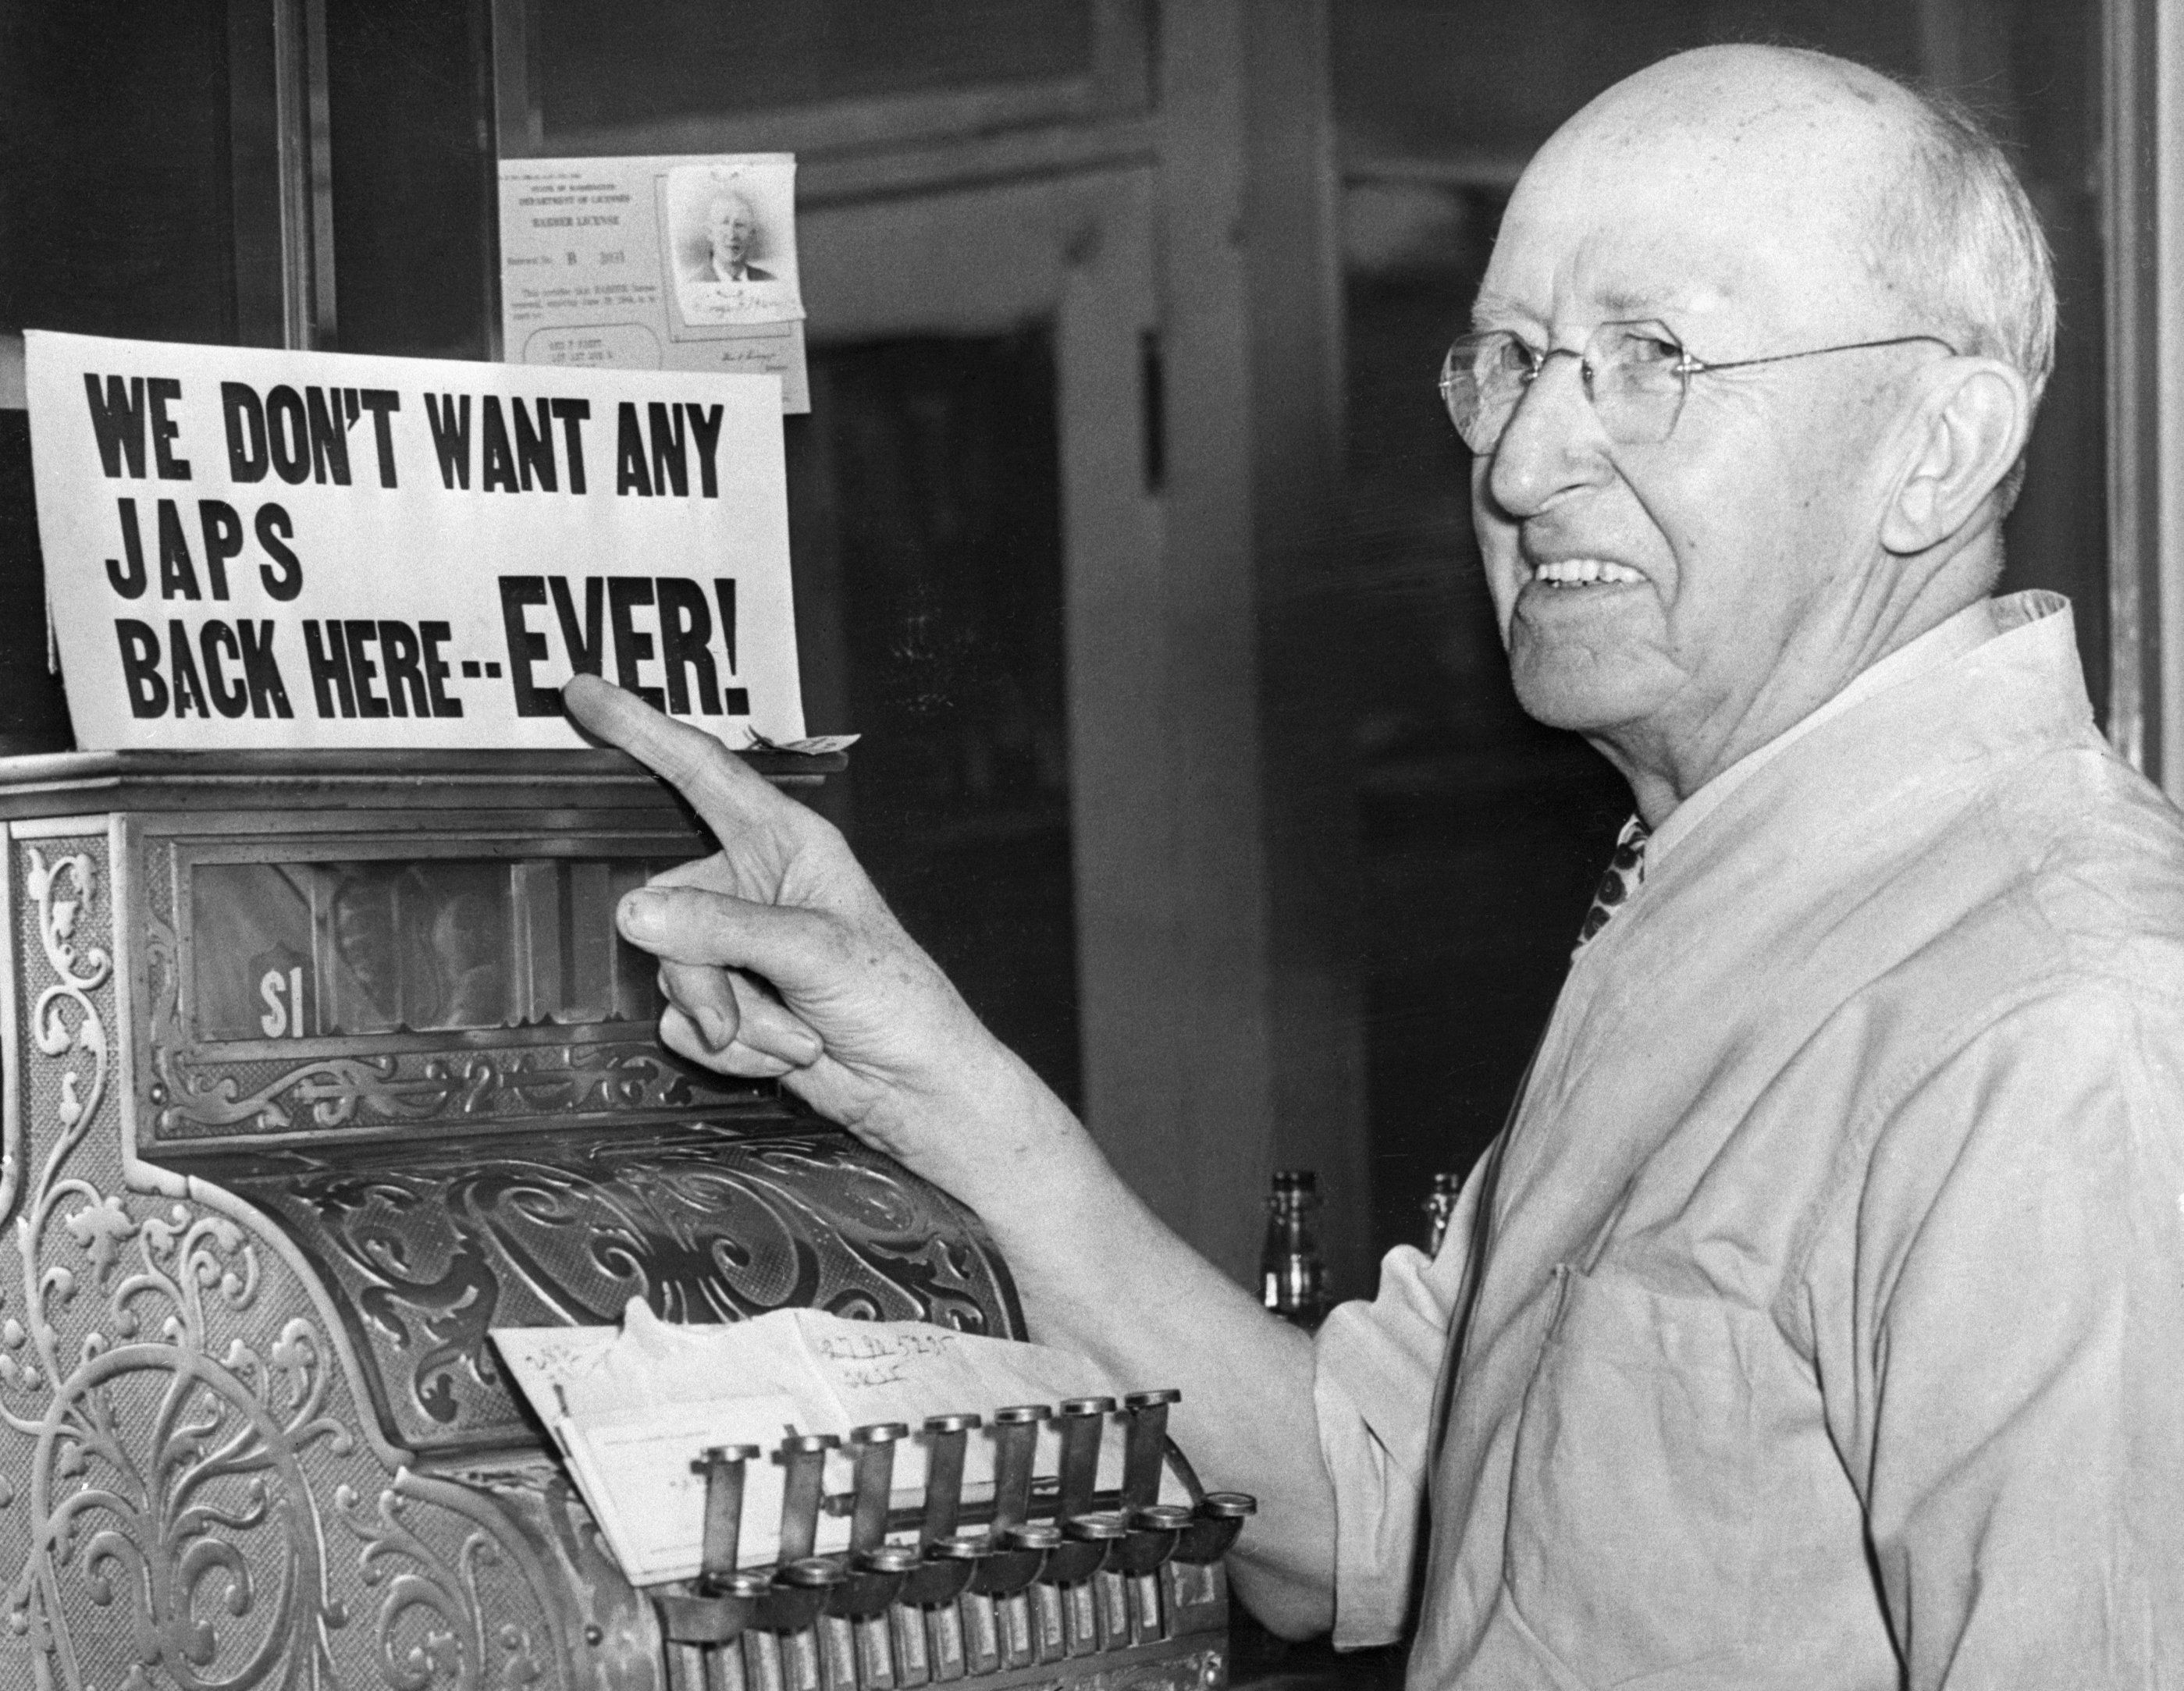 After the internment of Japanese Americans from the Seattle region, barber G.S. Hante points proudly to his bigoted sign reading We Don't Want Any Japs Back Her..EVER!.